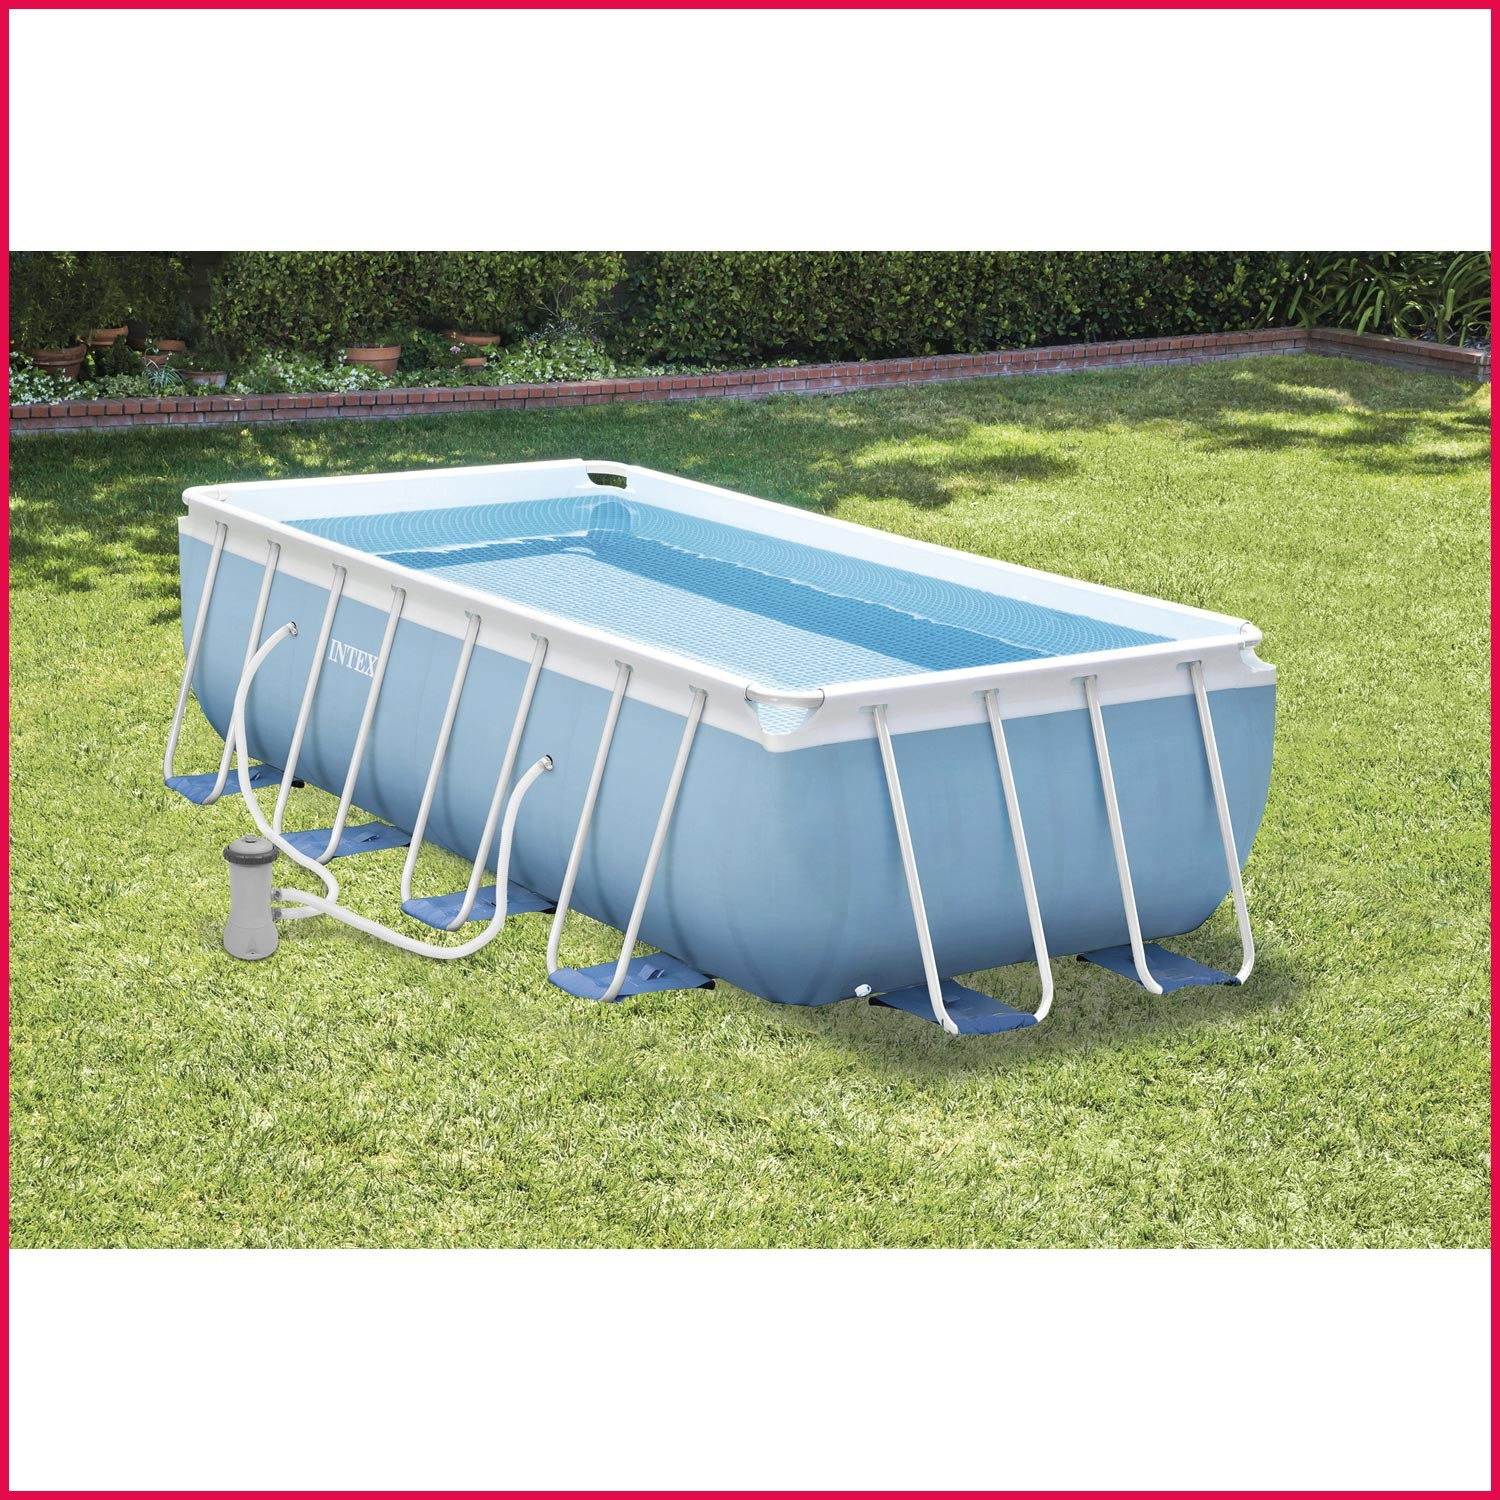 aspirateur piscine intex leroy merlin